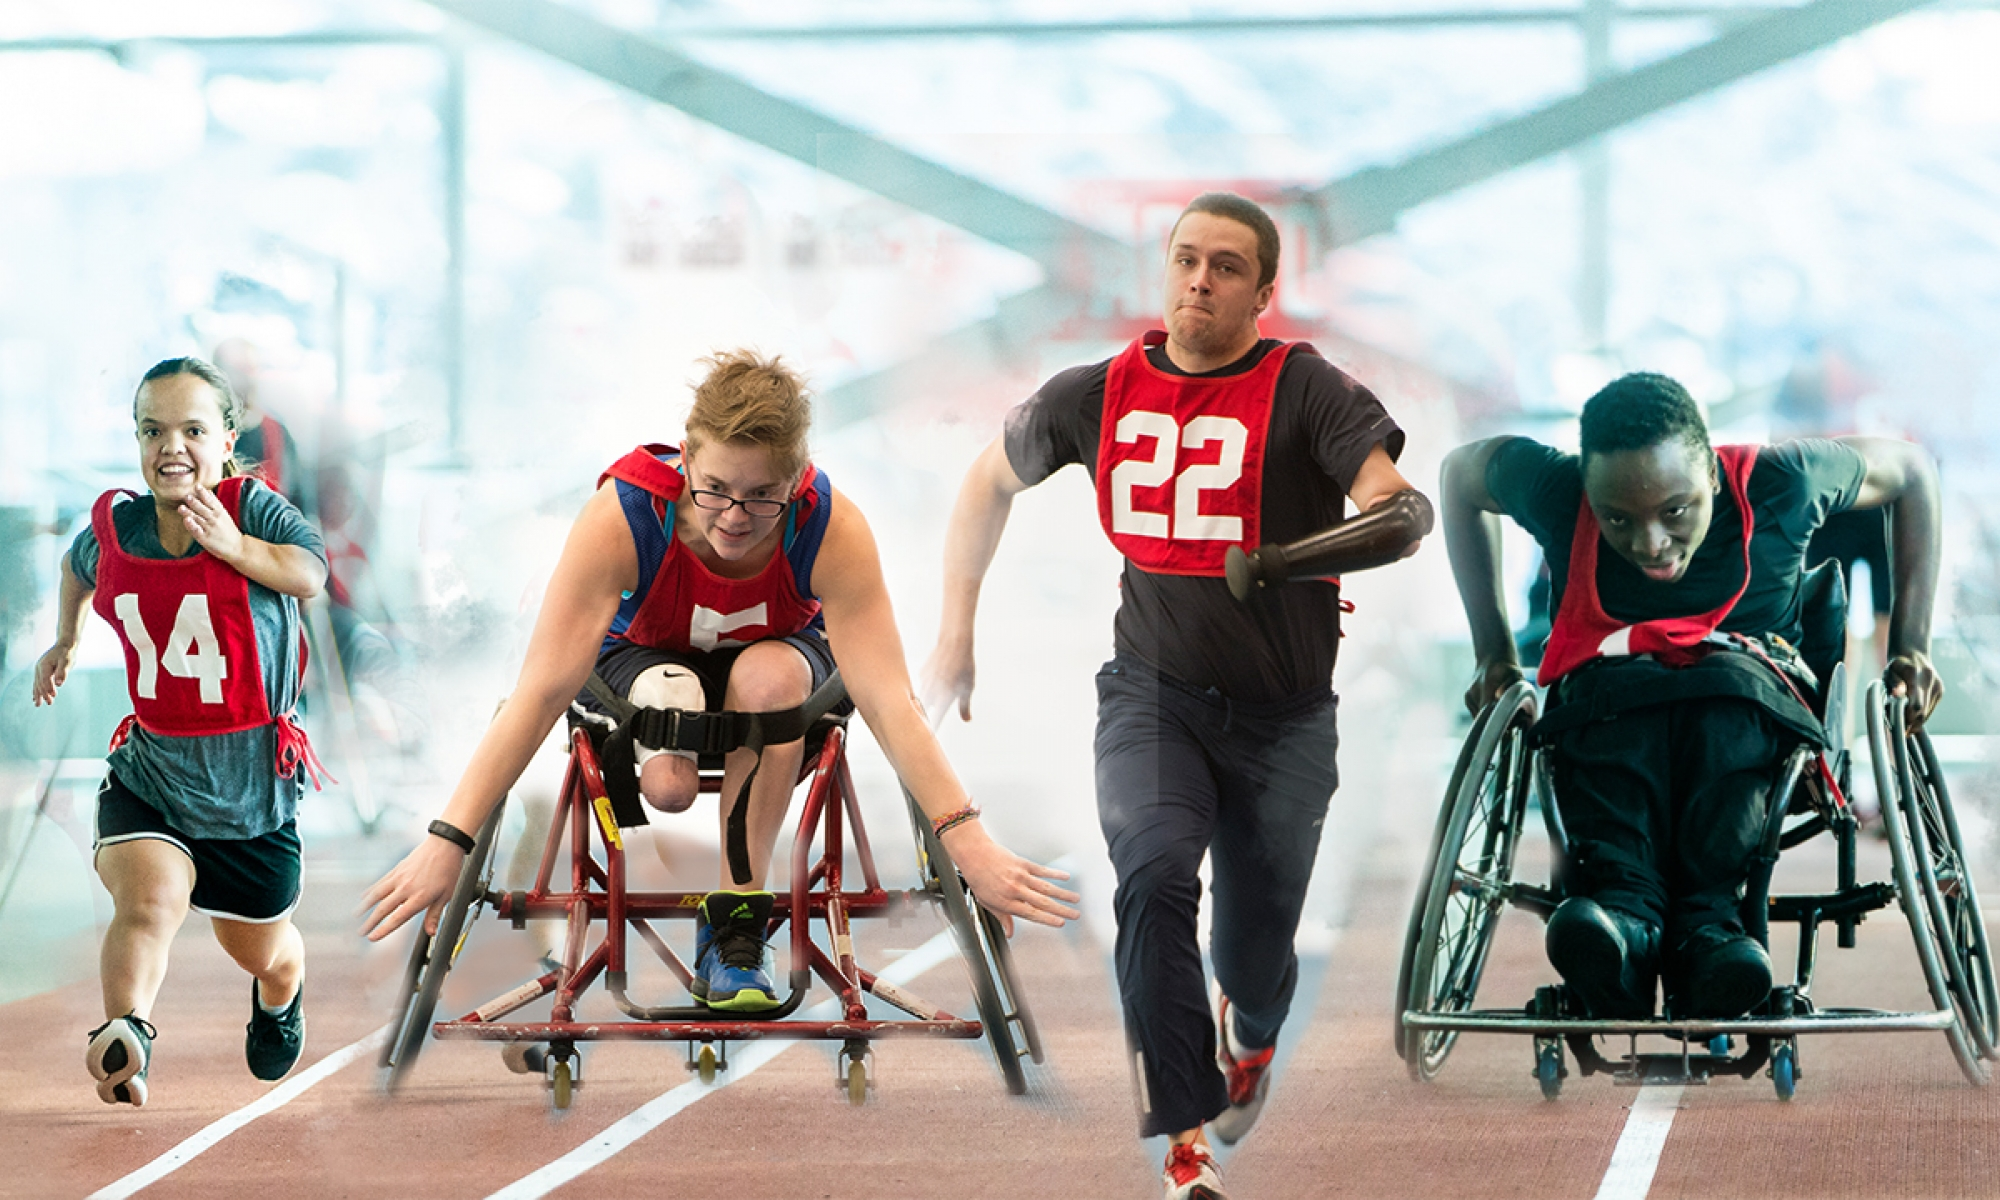 athletes running in wheelchairs, upper limb impairment,and short stature